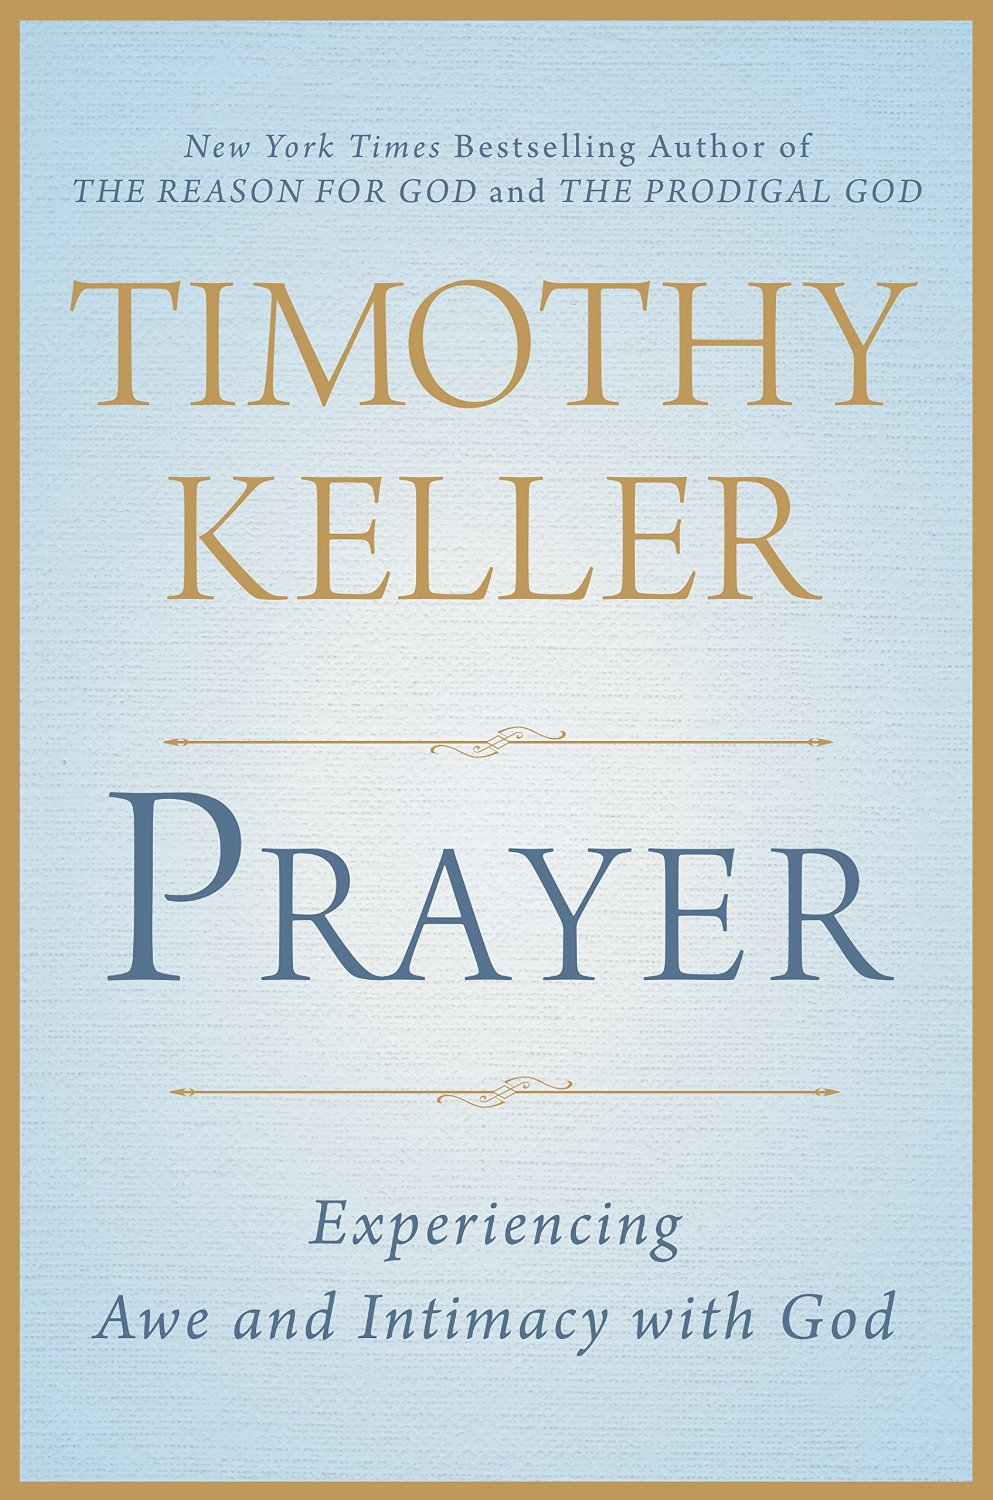 Tim Keller Quotes | 20 Quotes From Tim Keller S New Book On Prayer